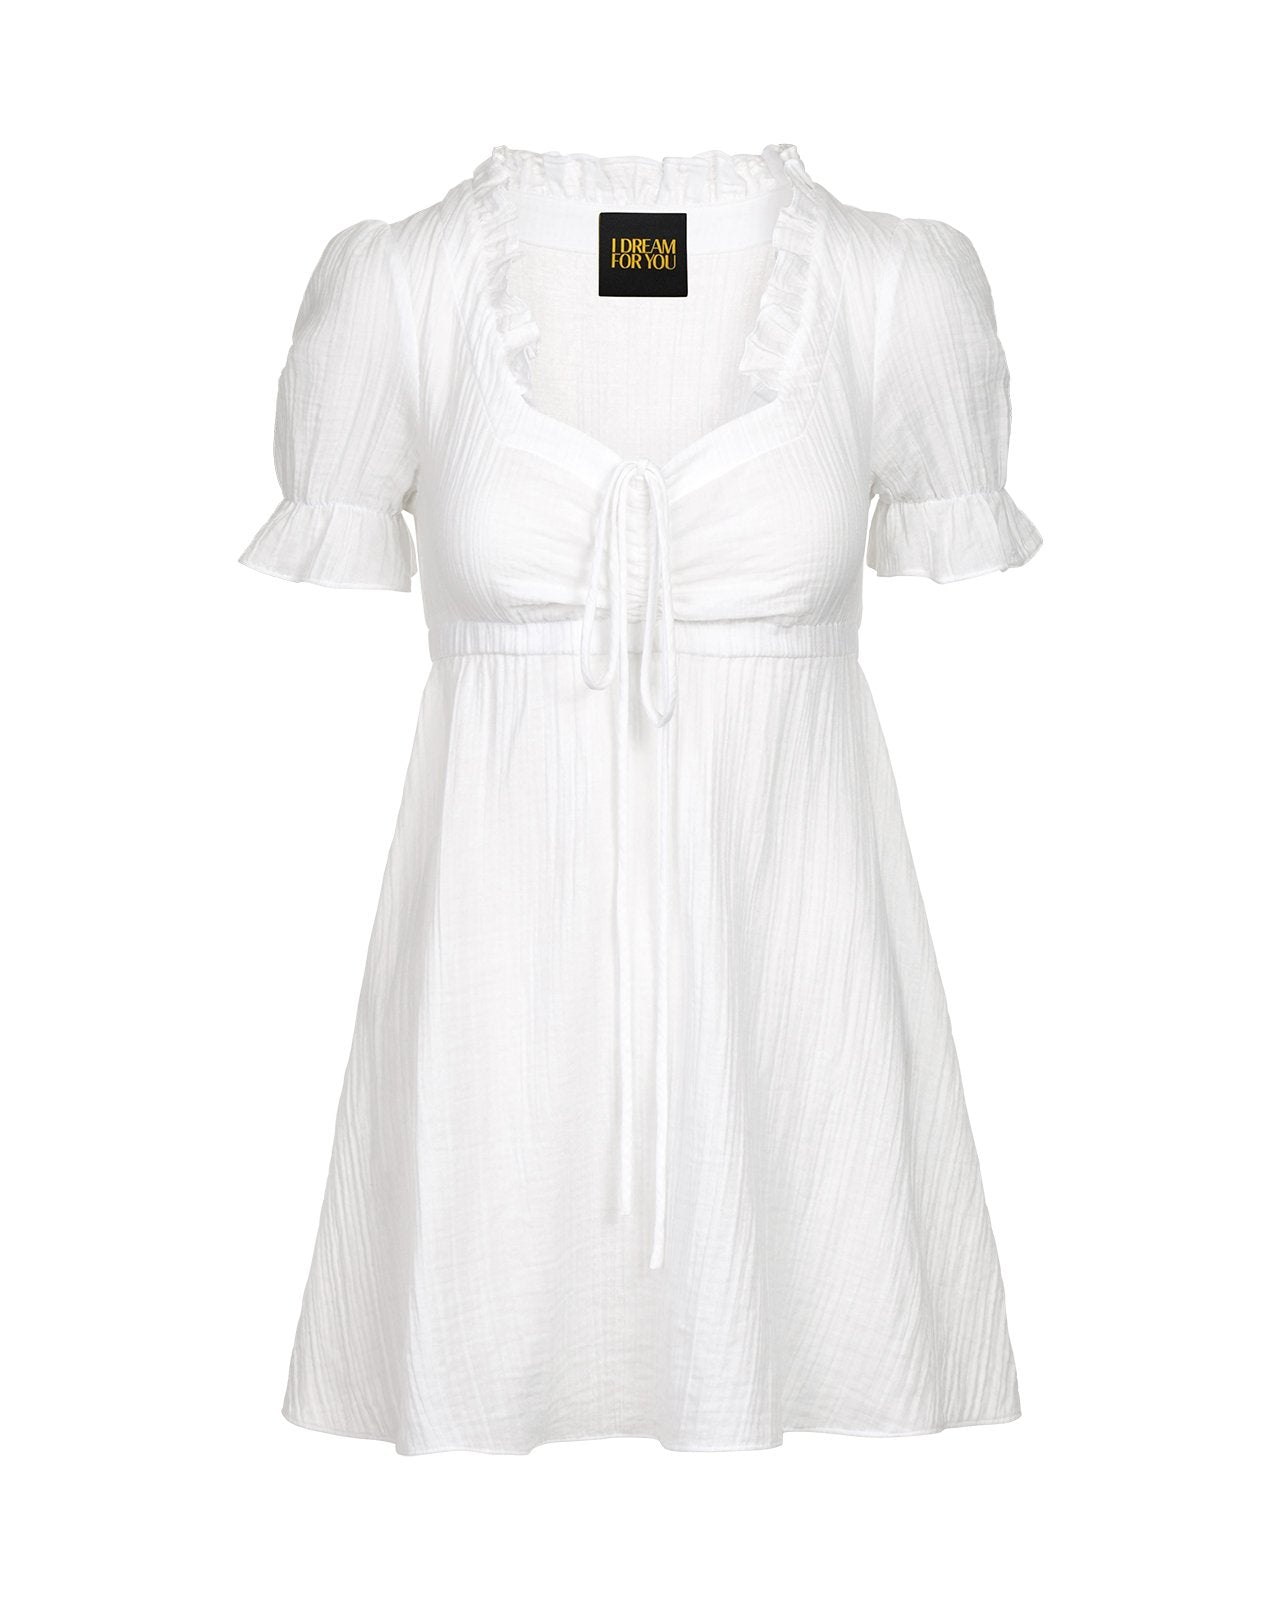 Venus Dress – White